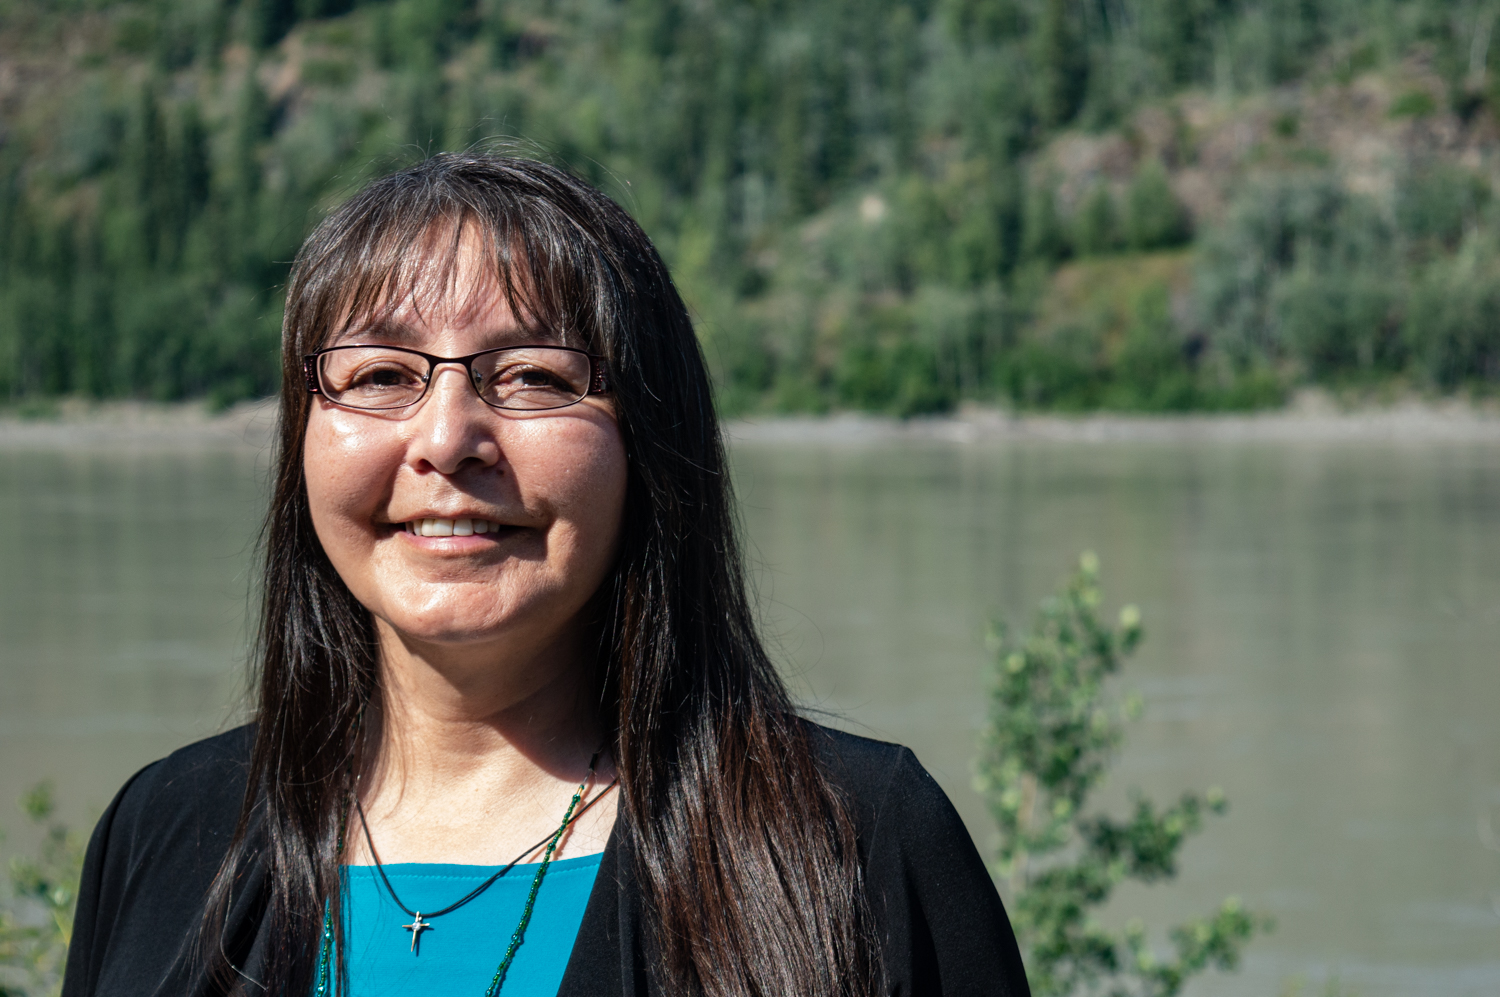 Roberta Joseph is chief of the Tr'ondek Hwech'in First Nation. She says salmon holds high spiritual value for her people. Photo by Reina Cowan